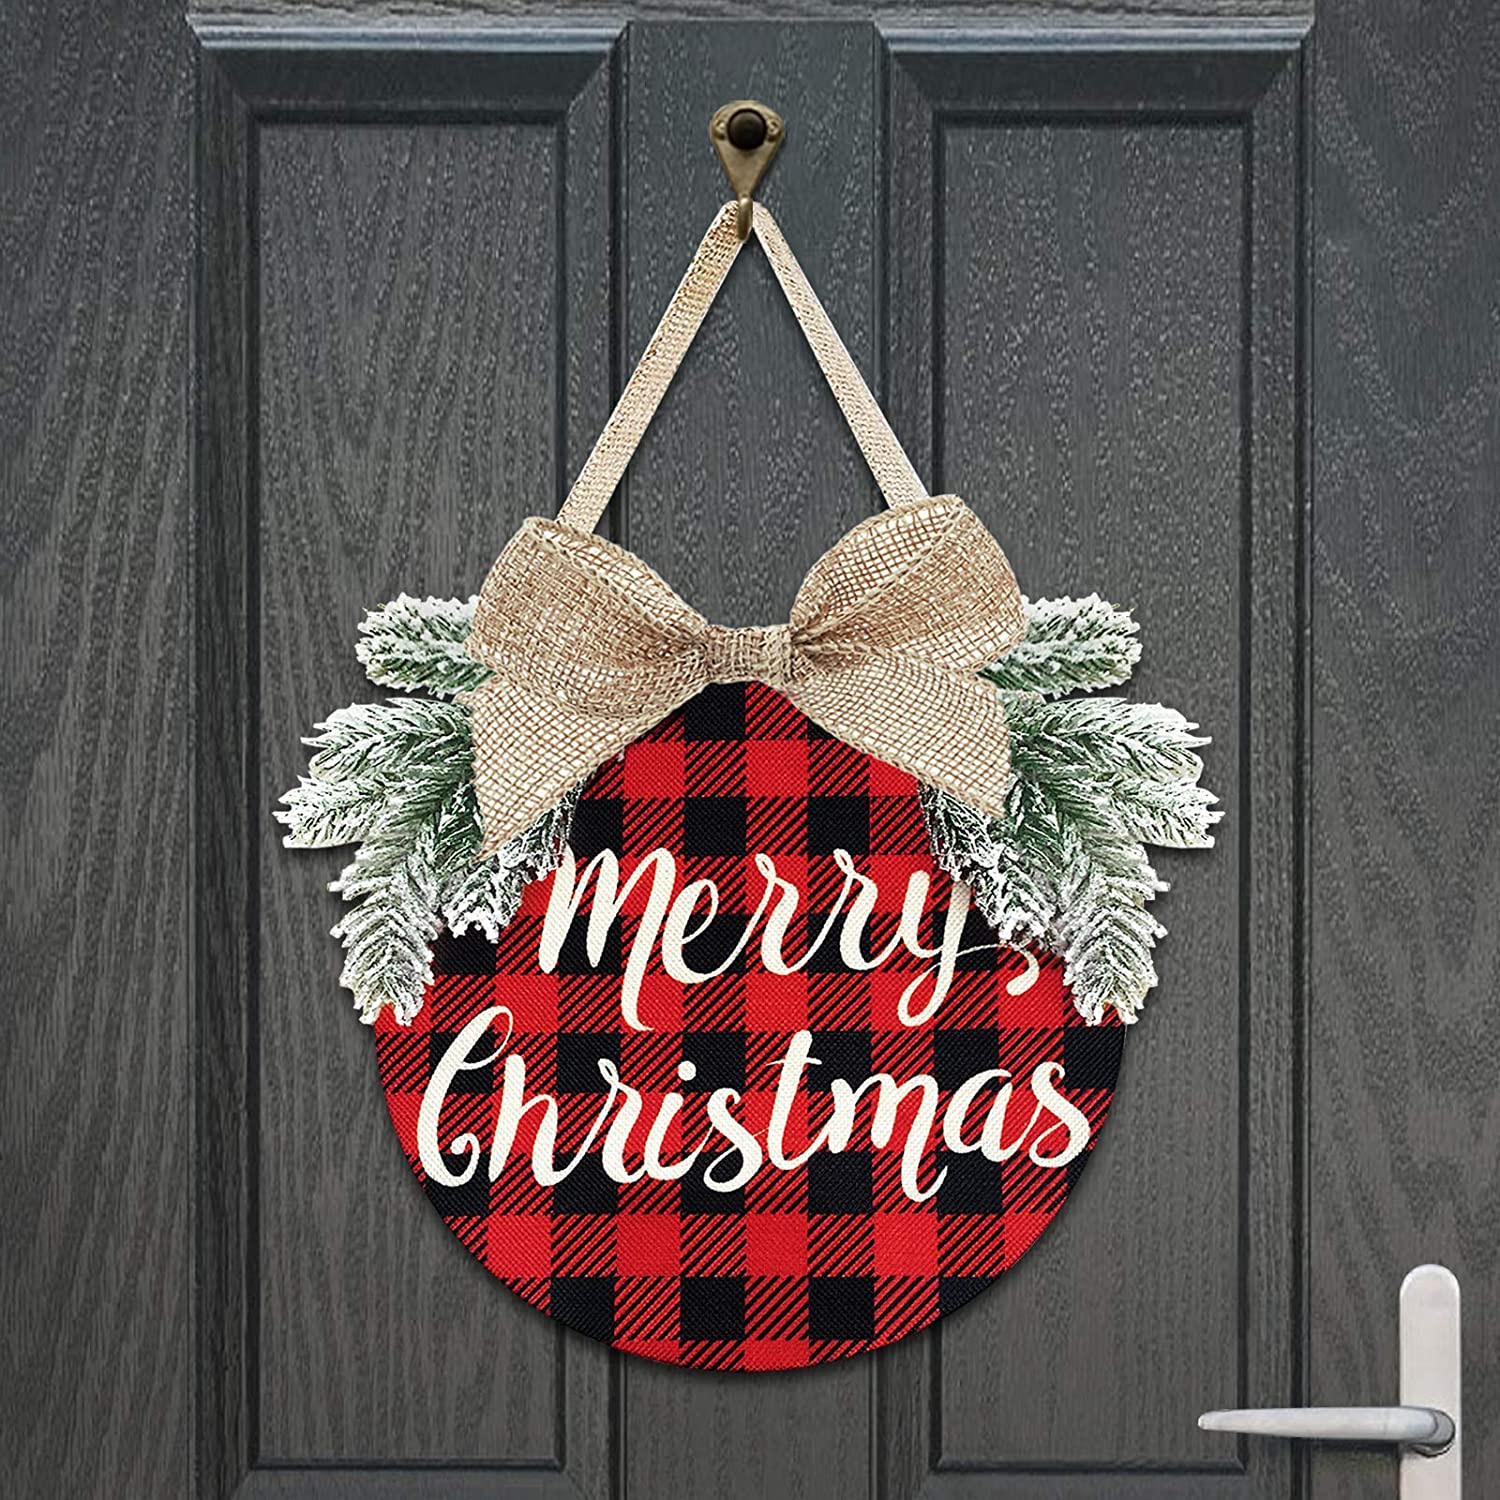 Christmas Wreath - Buffalo Plaid Xmas Decorations - Winter Wreaths Merry Christmas Sign for Holiday Rustic Farmhouse Front Door Porch Wall Window Outside Decorations